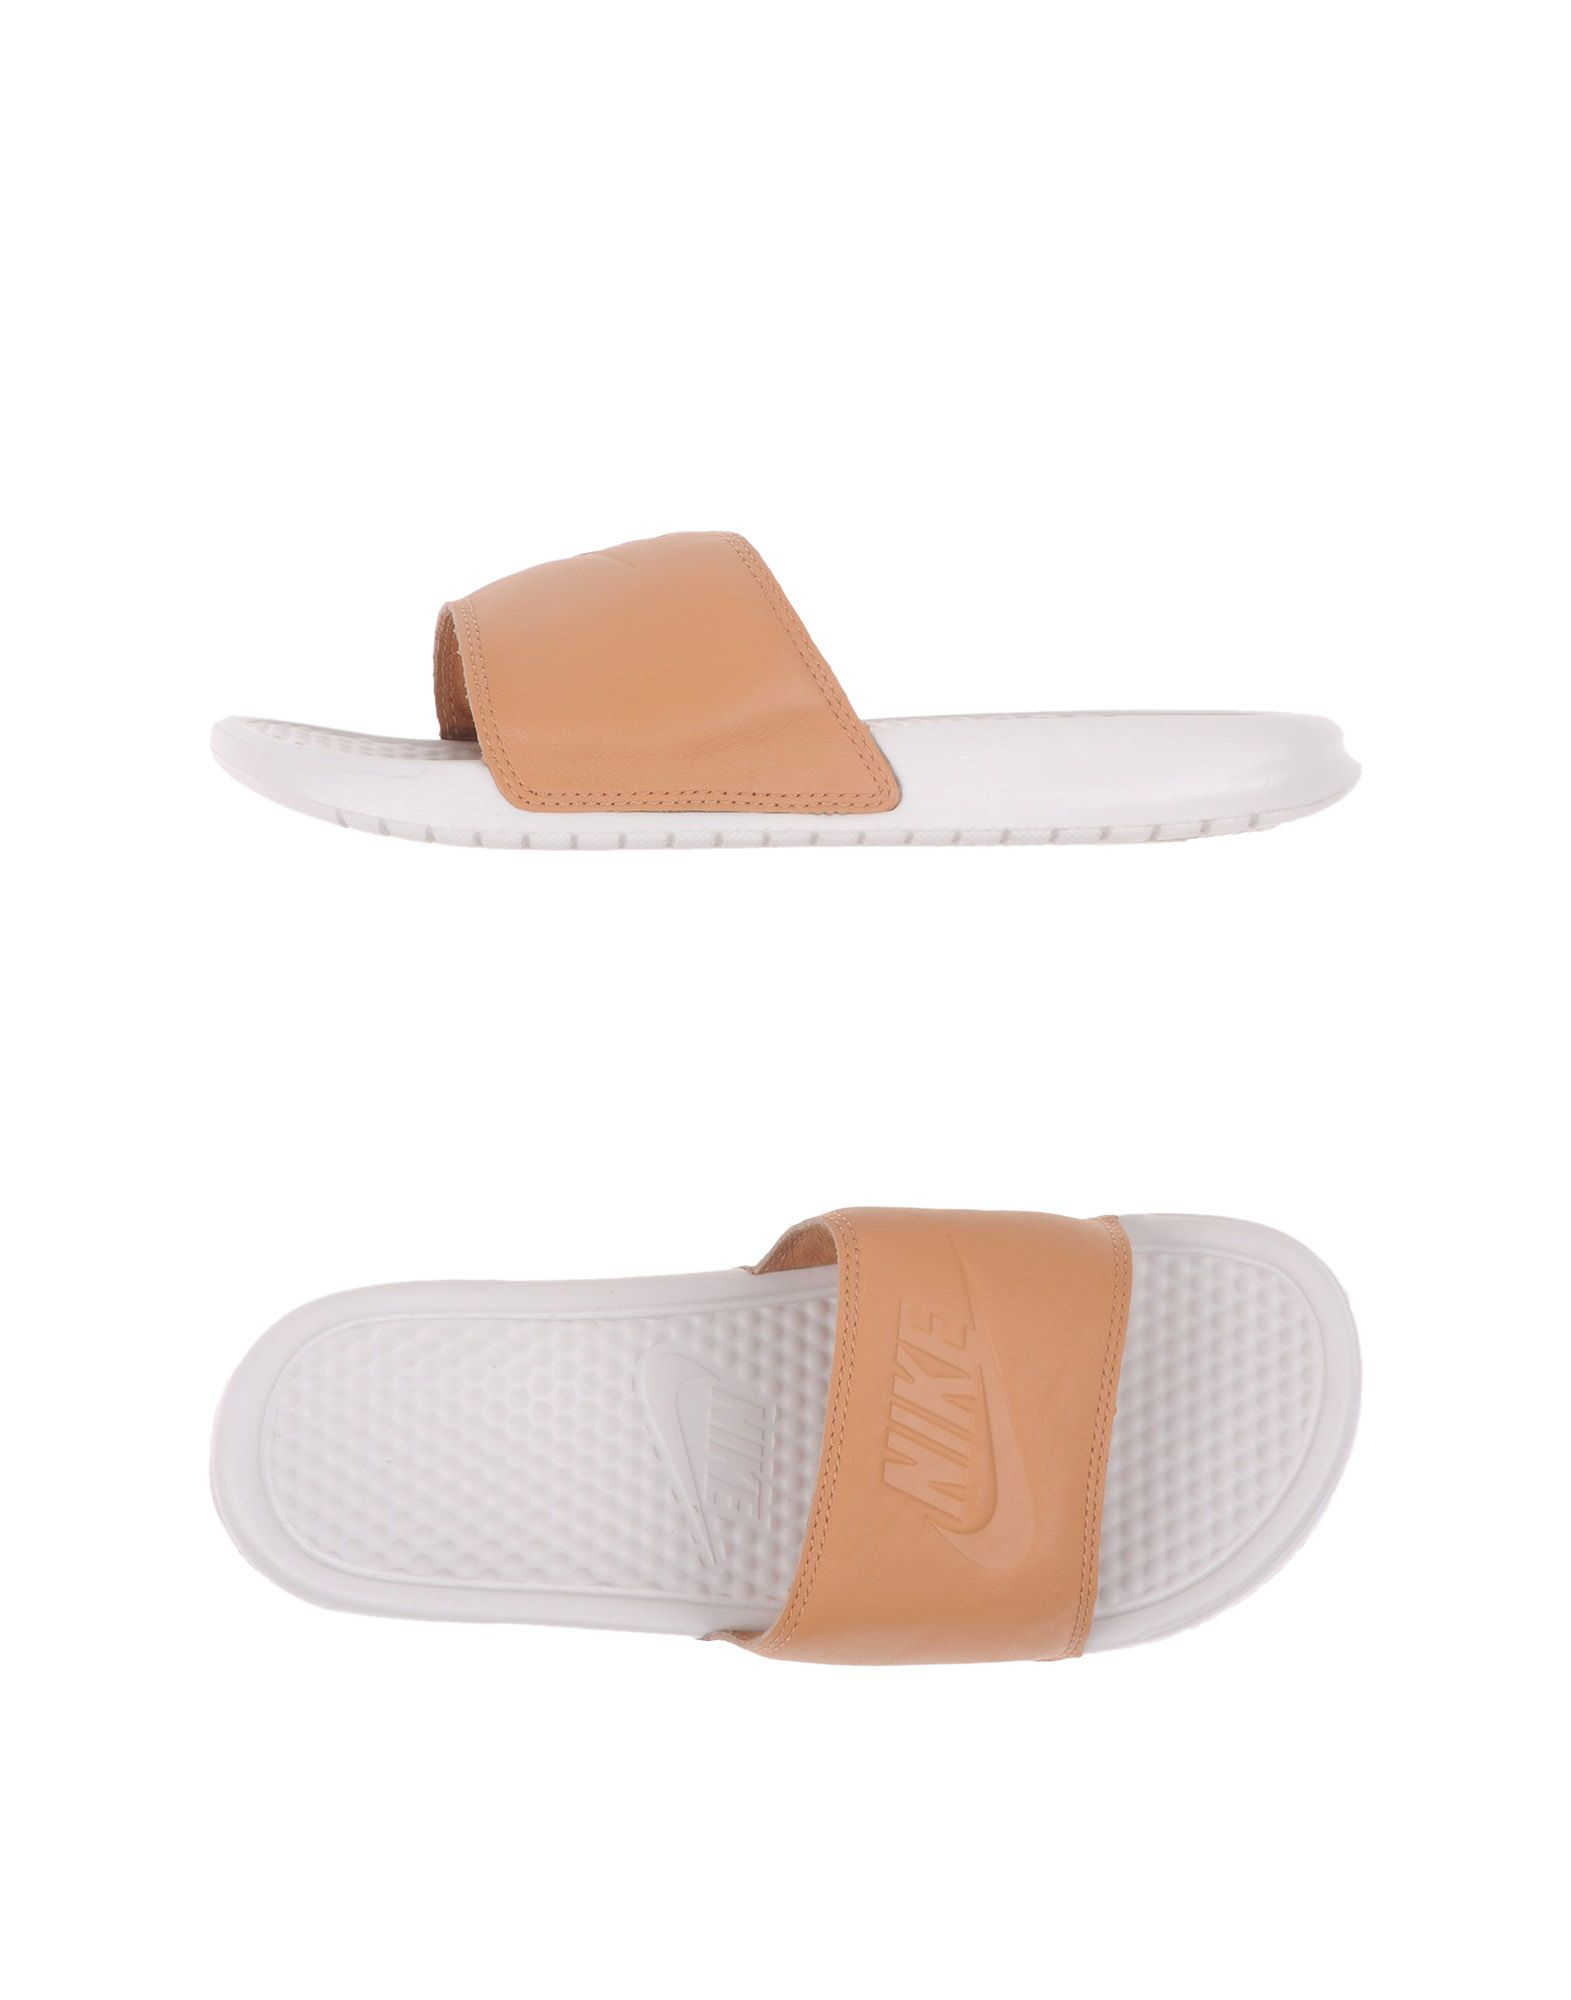 30b1ae154 ... australia lyst nike sandals in natural for men 5a0ca 593bf